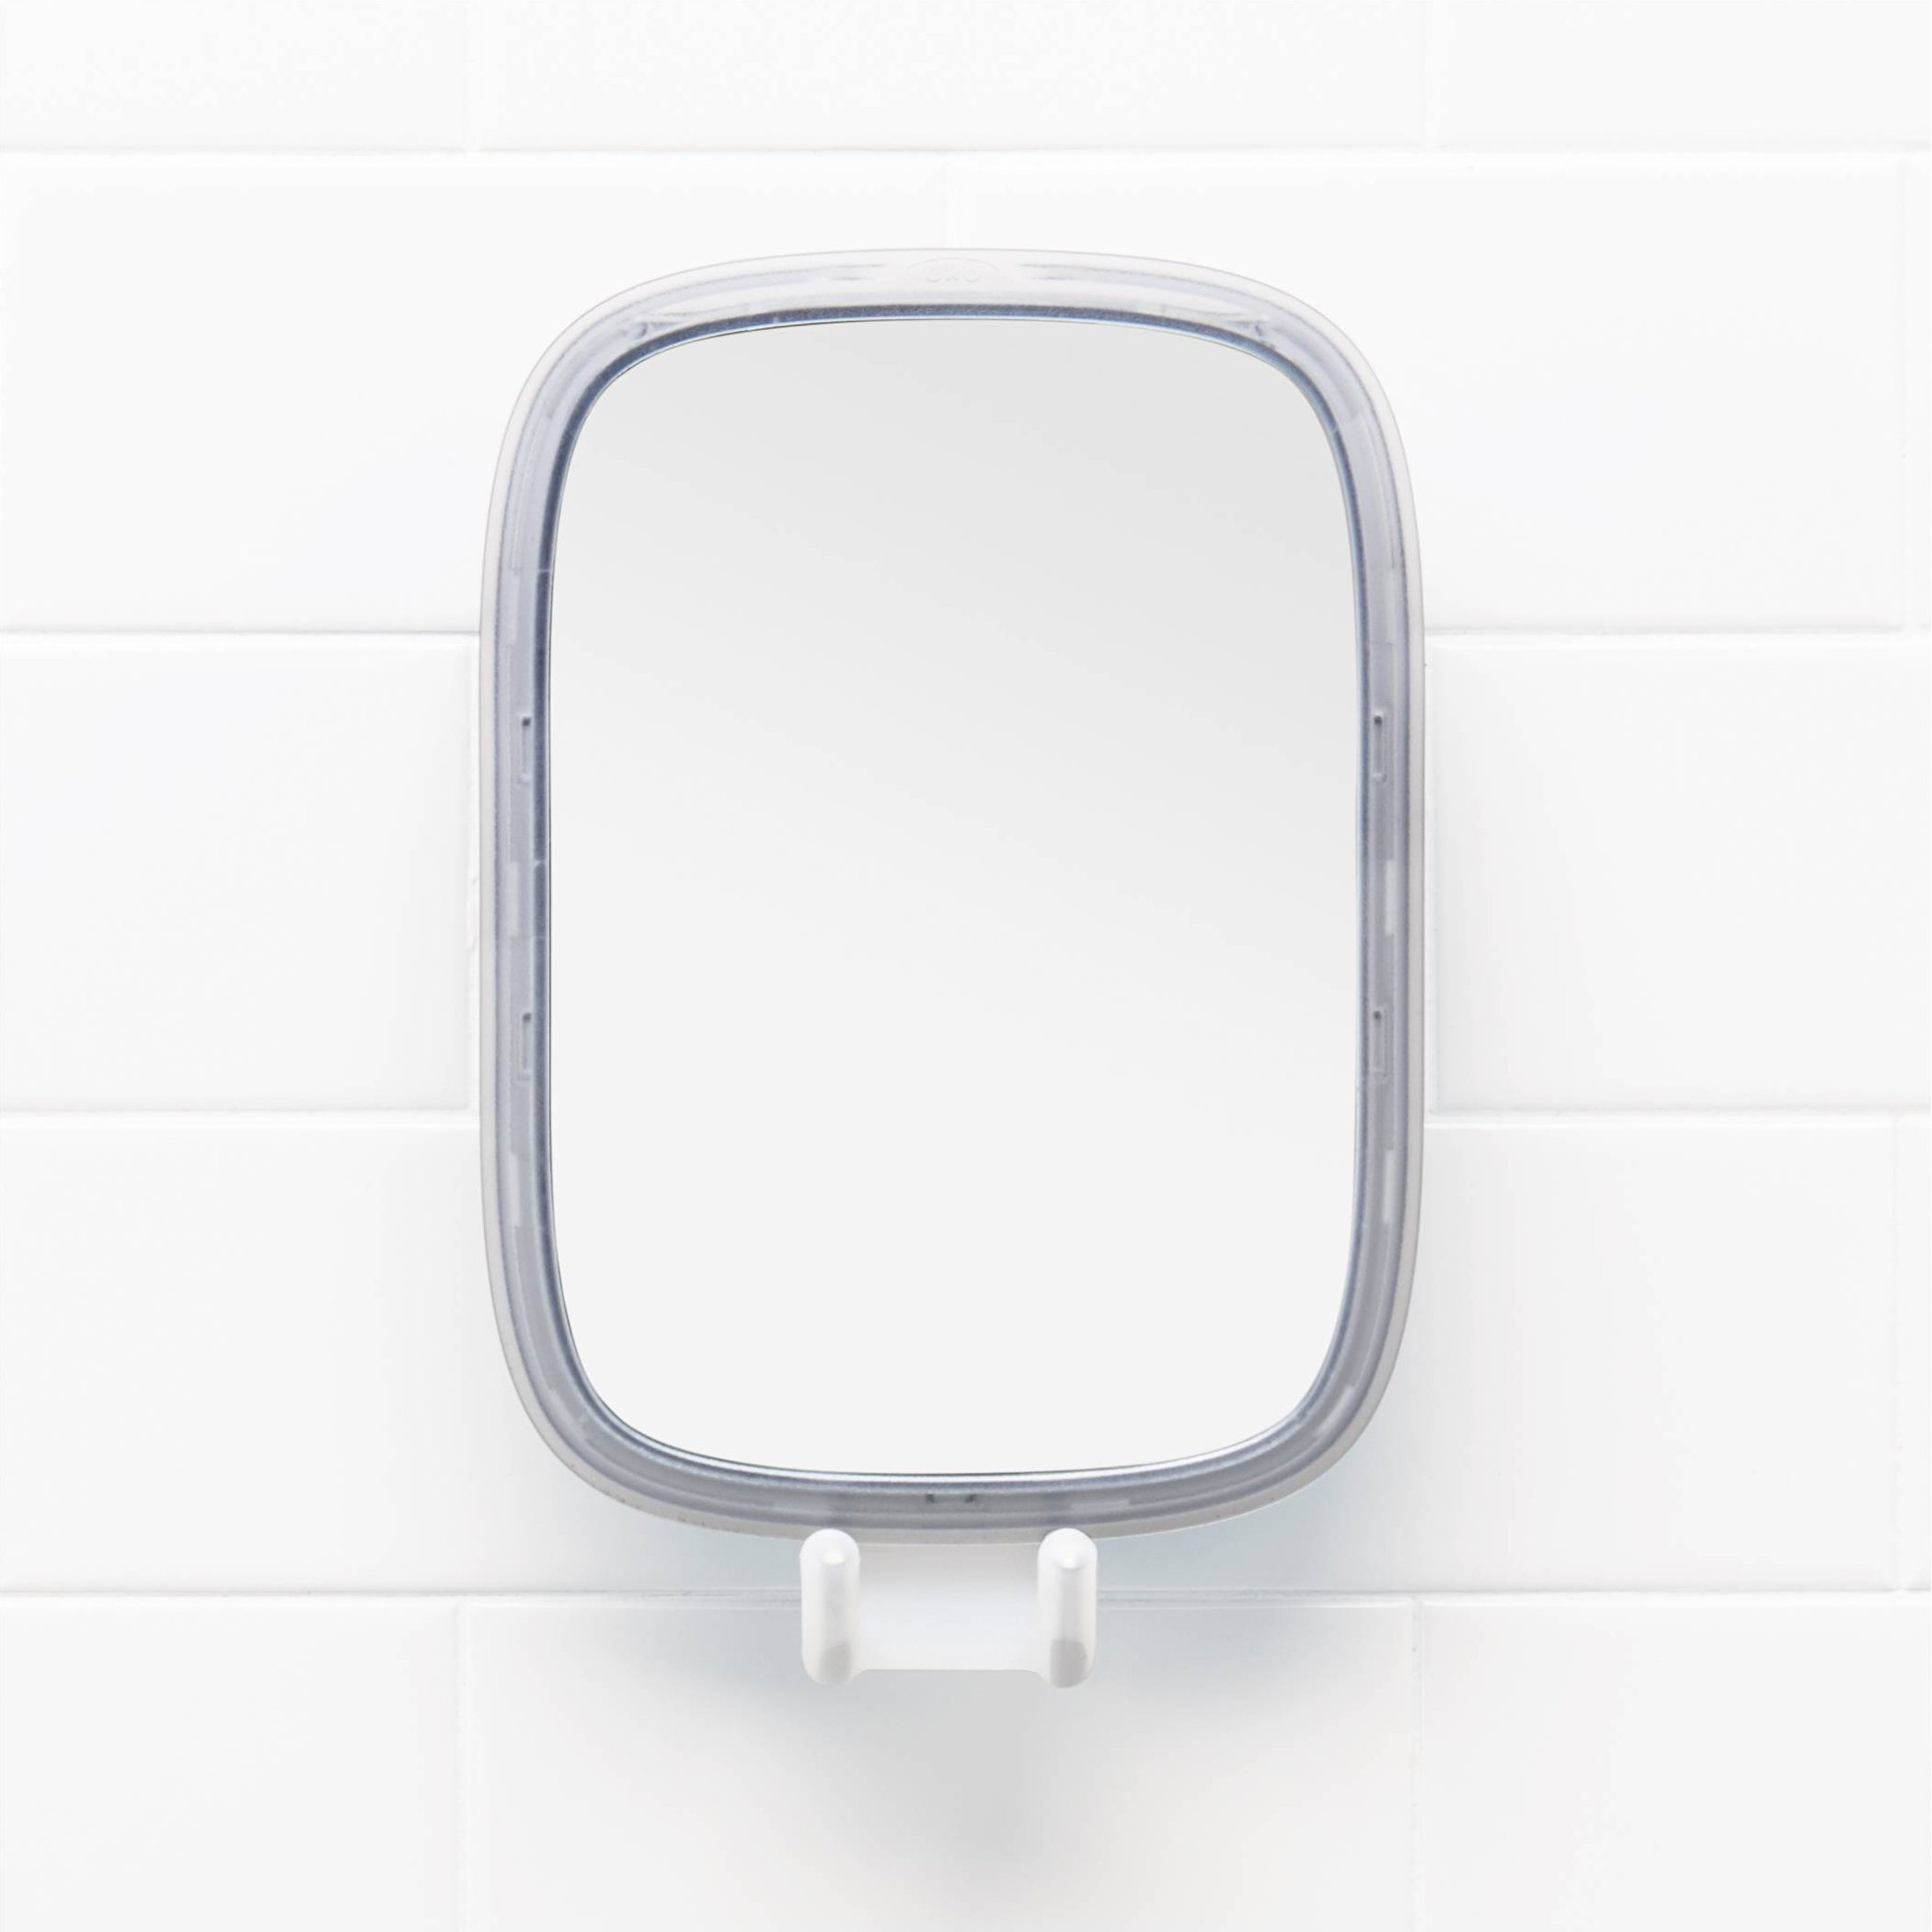 OXO Suction Fogless Mirror with Razor Holder and Tool-Free Adhesive Mount - White